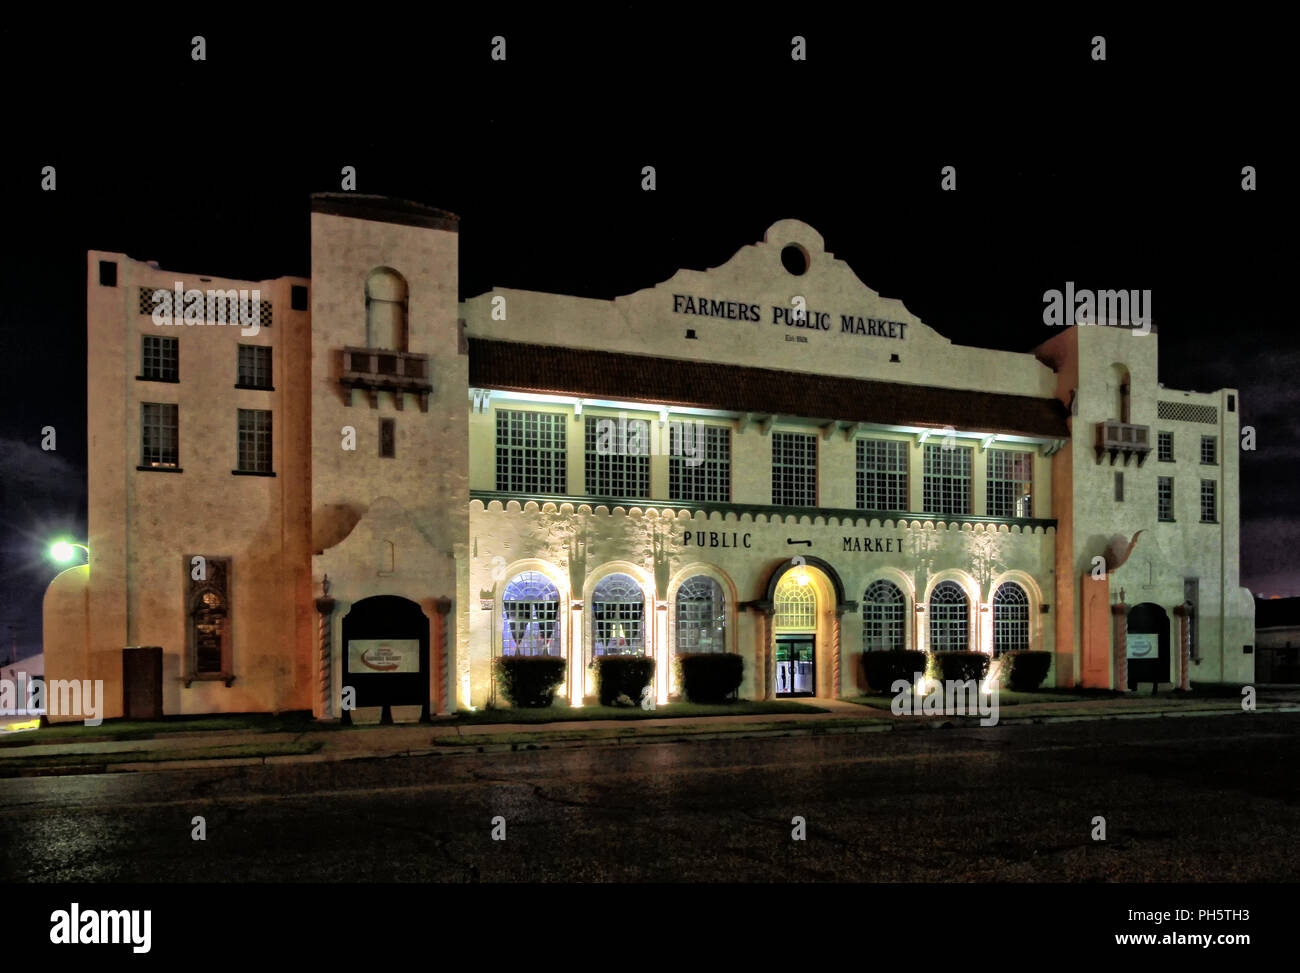 The historic Oklahoma City Farmers Public Market building is lit up at night. Stock Photo